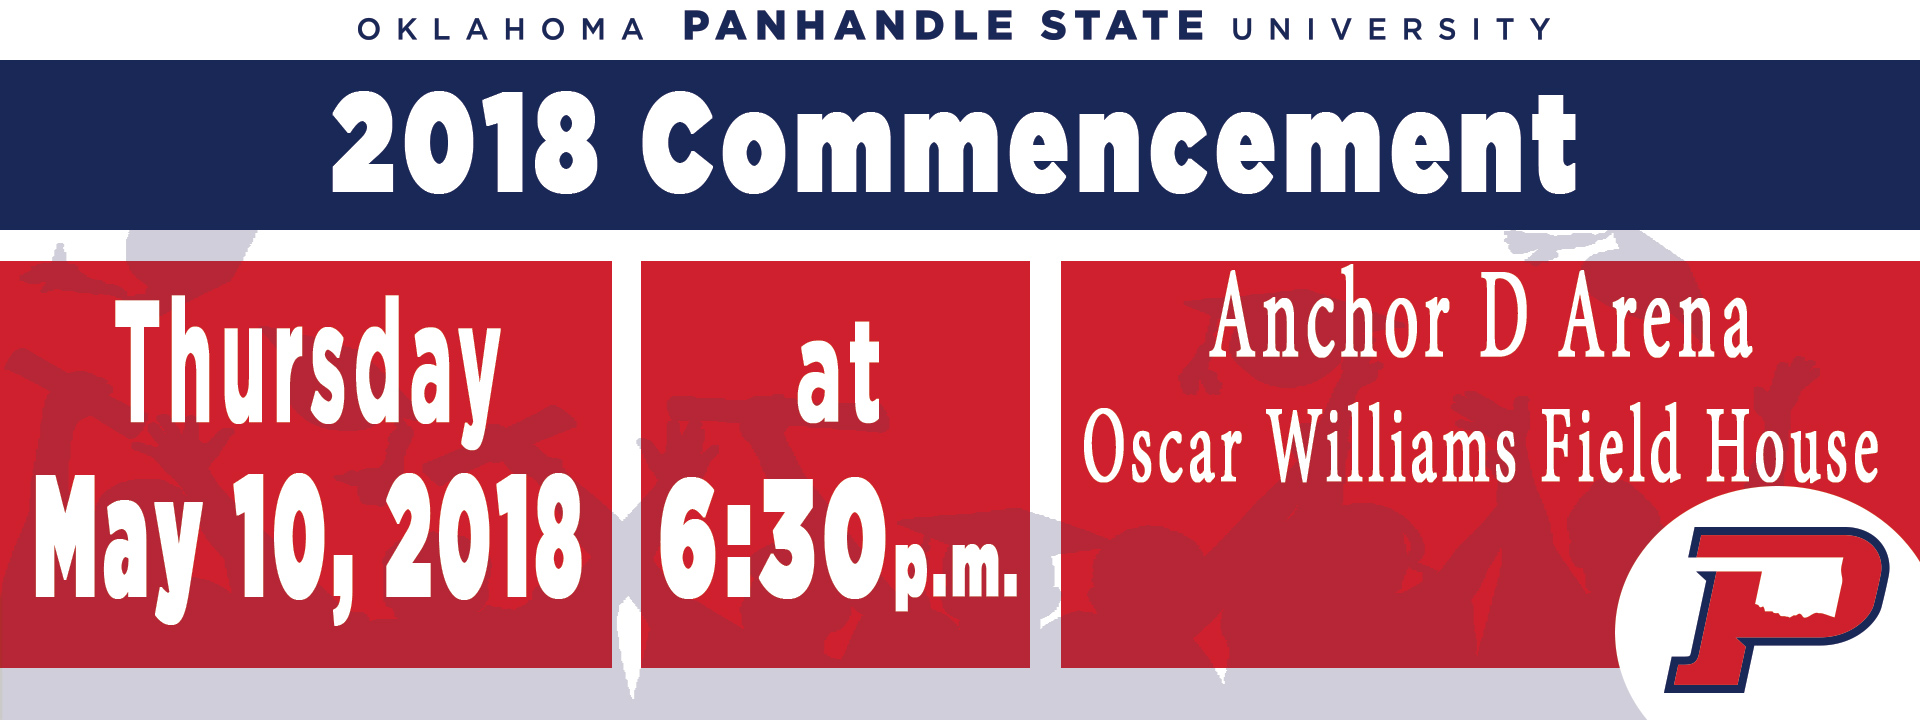 2018 Commencement: Thursday May 10, 2018 at 6:30 p.m. in Anchor D Arena Oscar Williams Field House